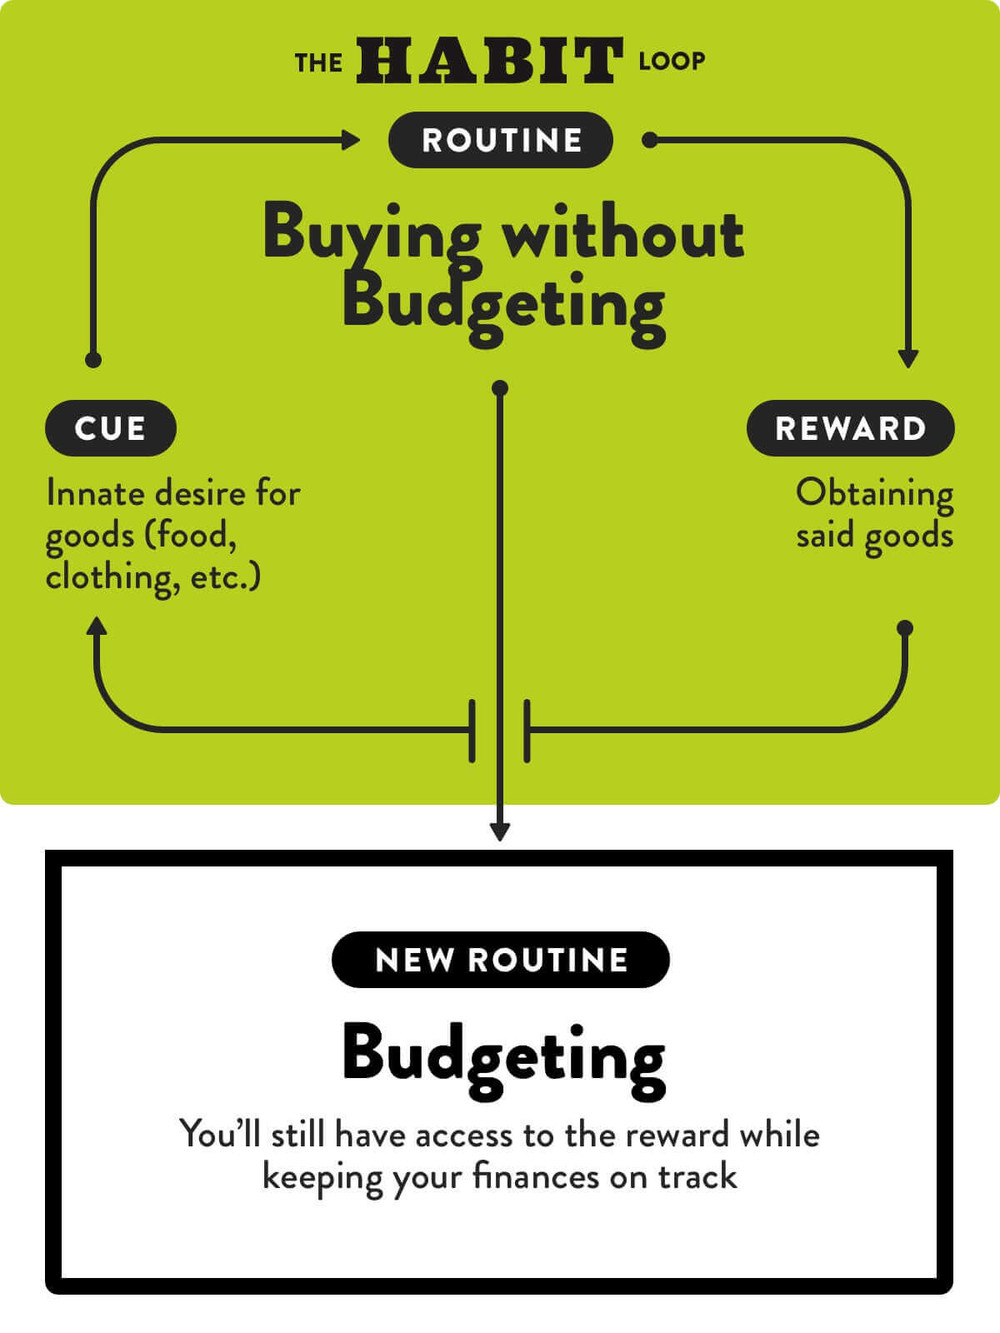 buying without budgeting habit loop